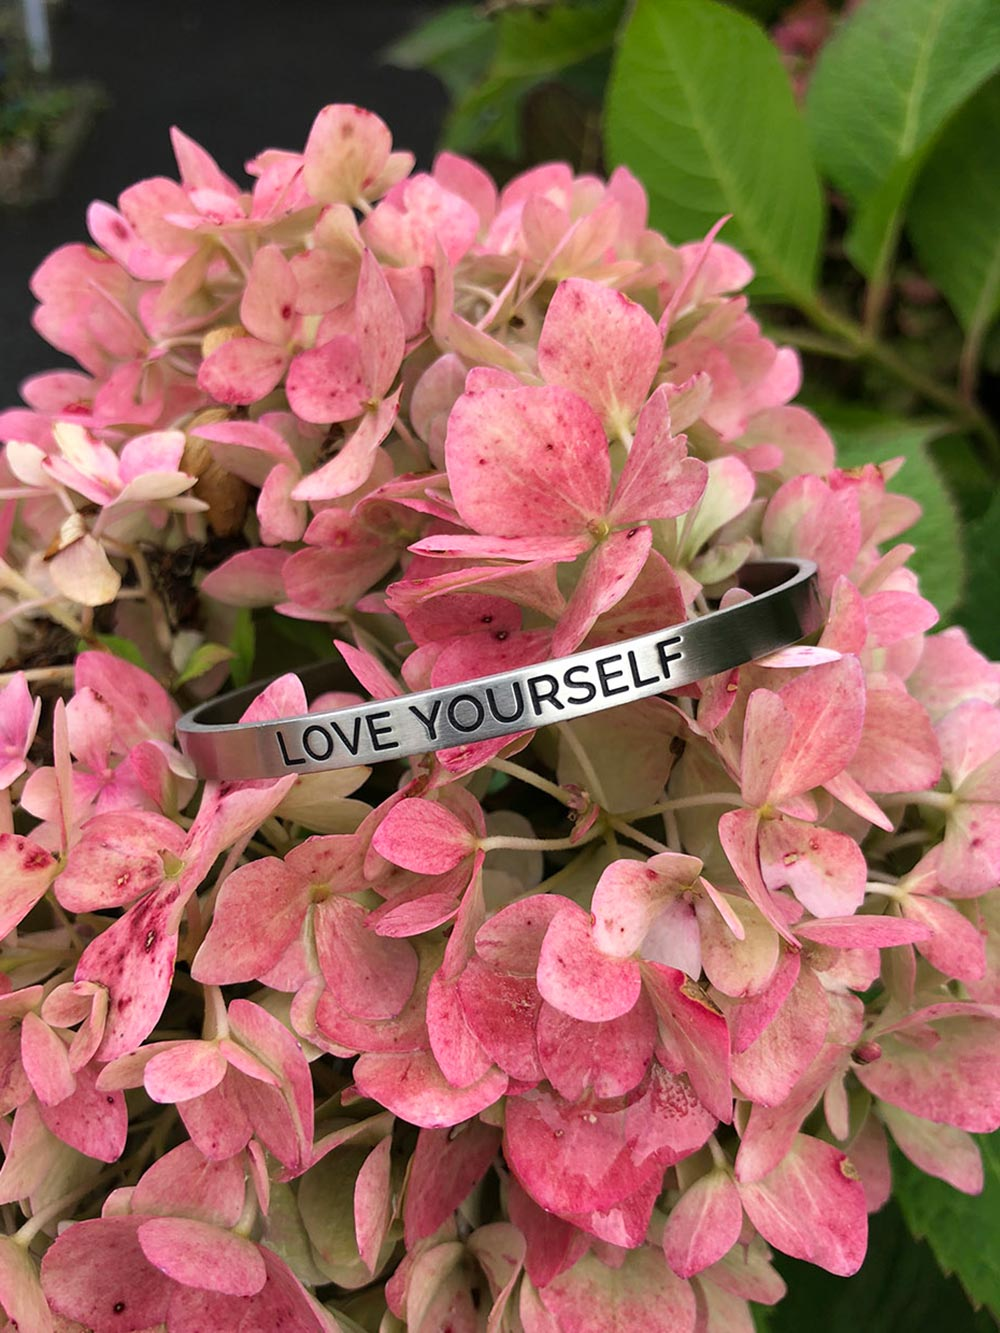 Love Yourself - Affirmation Bracelet